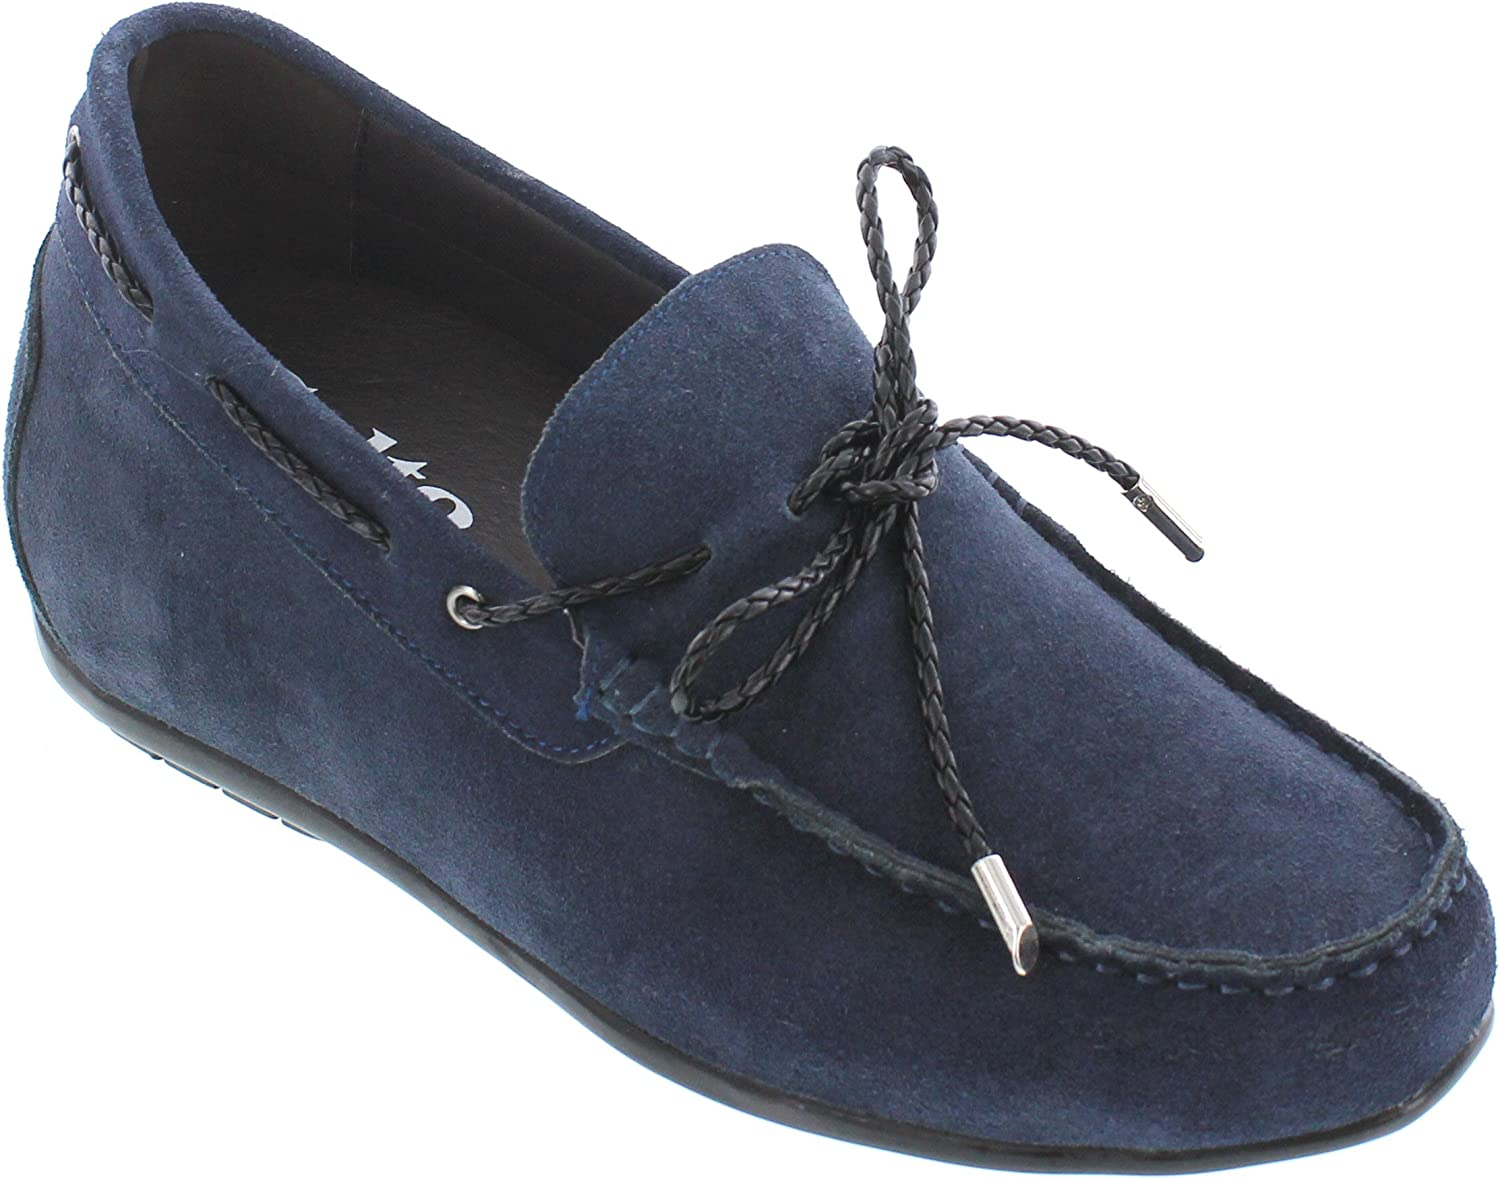 CALTO Men's Invisible Height Increasing Elevator shoes - Navy bluee Suede Leather Mac-Toe Slip-on Penny Loafers - 3 Inches Taller - Y45022